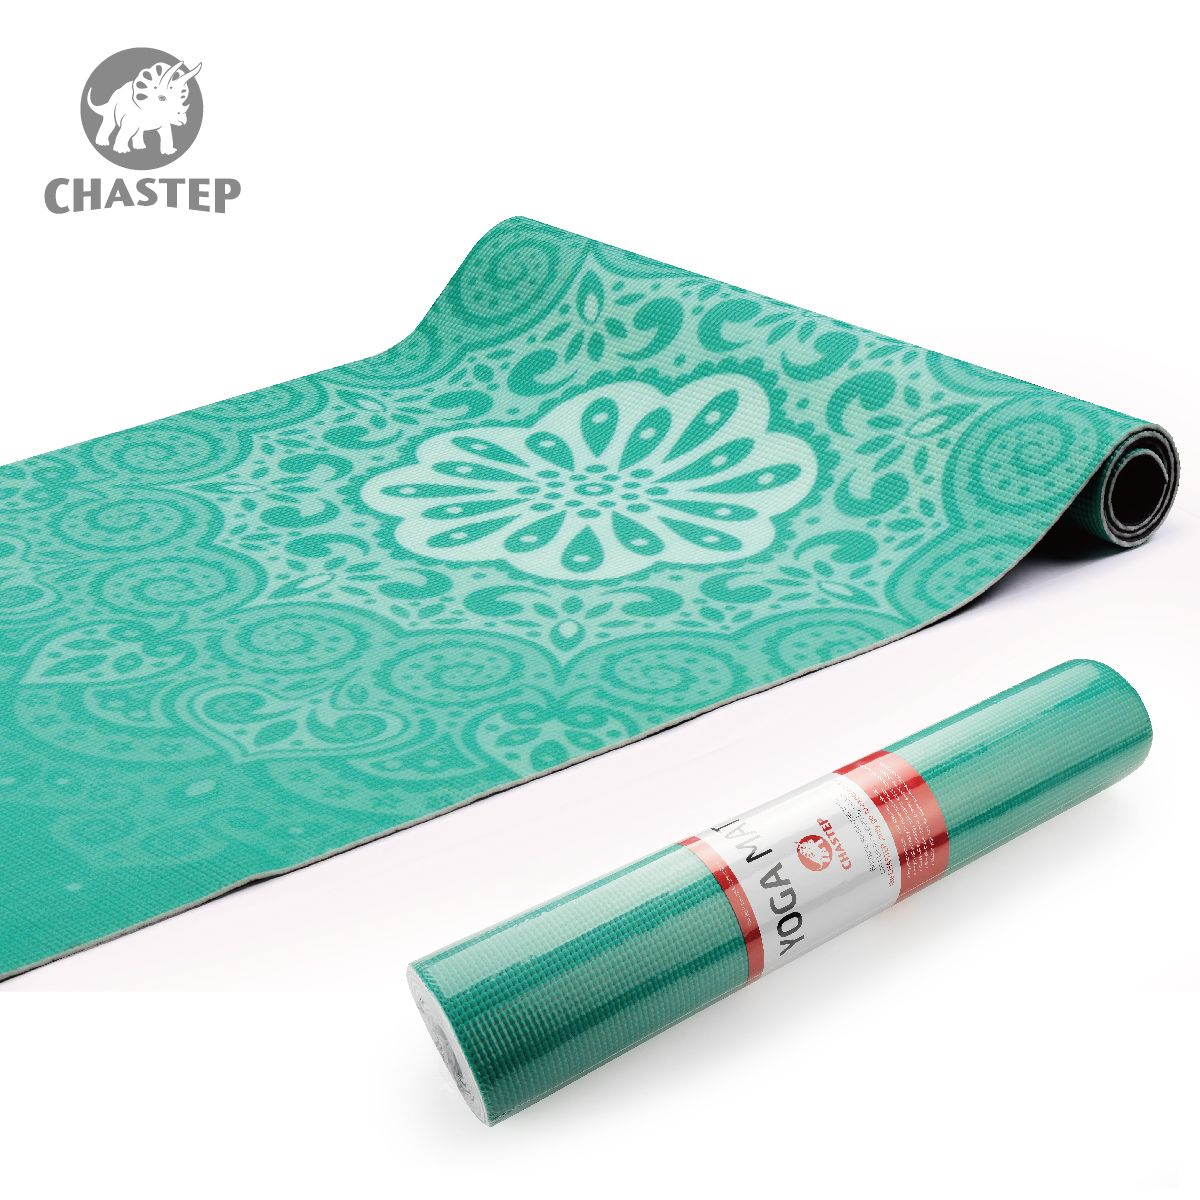 Product Name Chastep Original Design Yoga Mat Exercise Mat Material Pvc Size 183 Cm X 61 Cm X 6 Mm Function Chaste Hot Yoga Mat Yoga Mat Yoga Mats Design